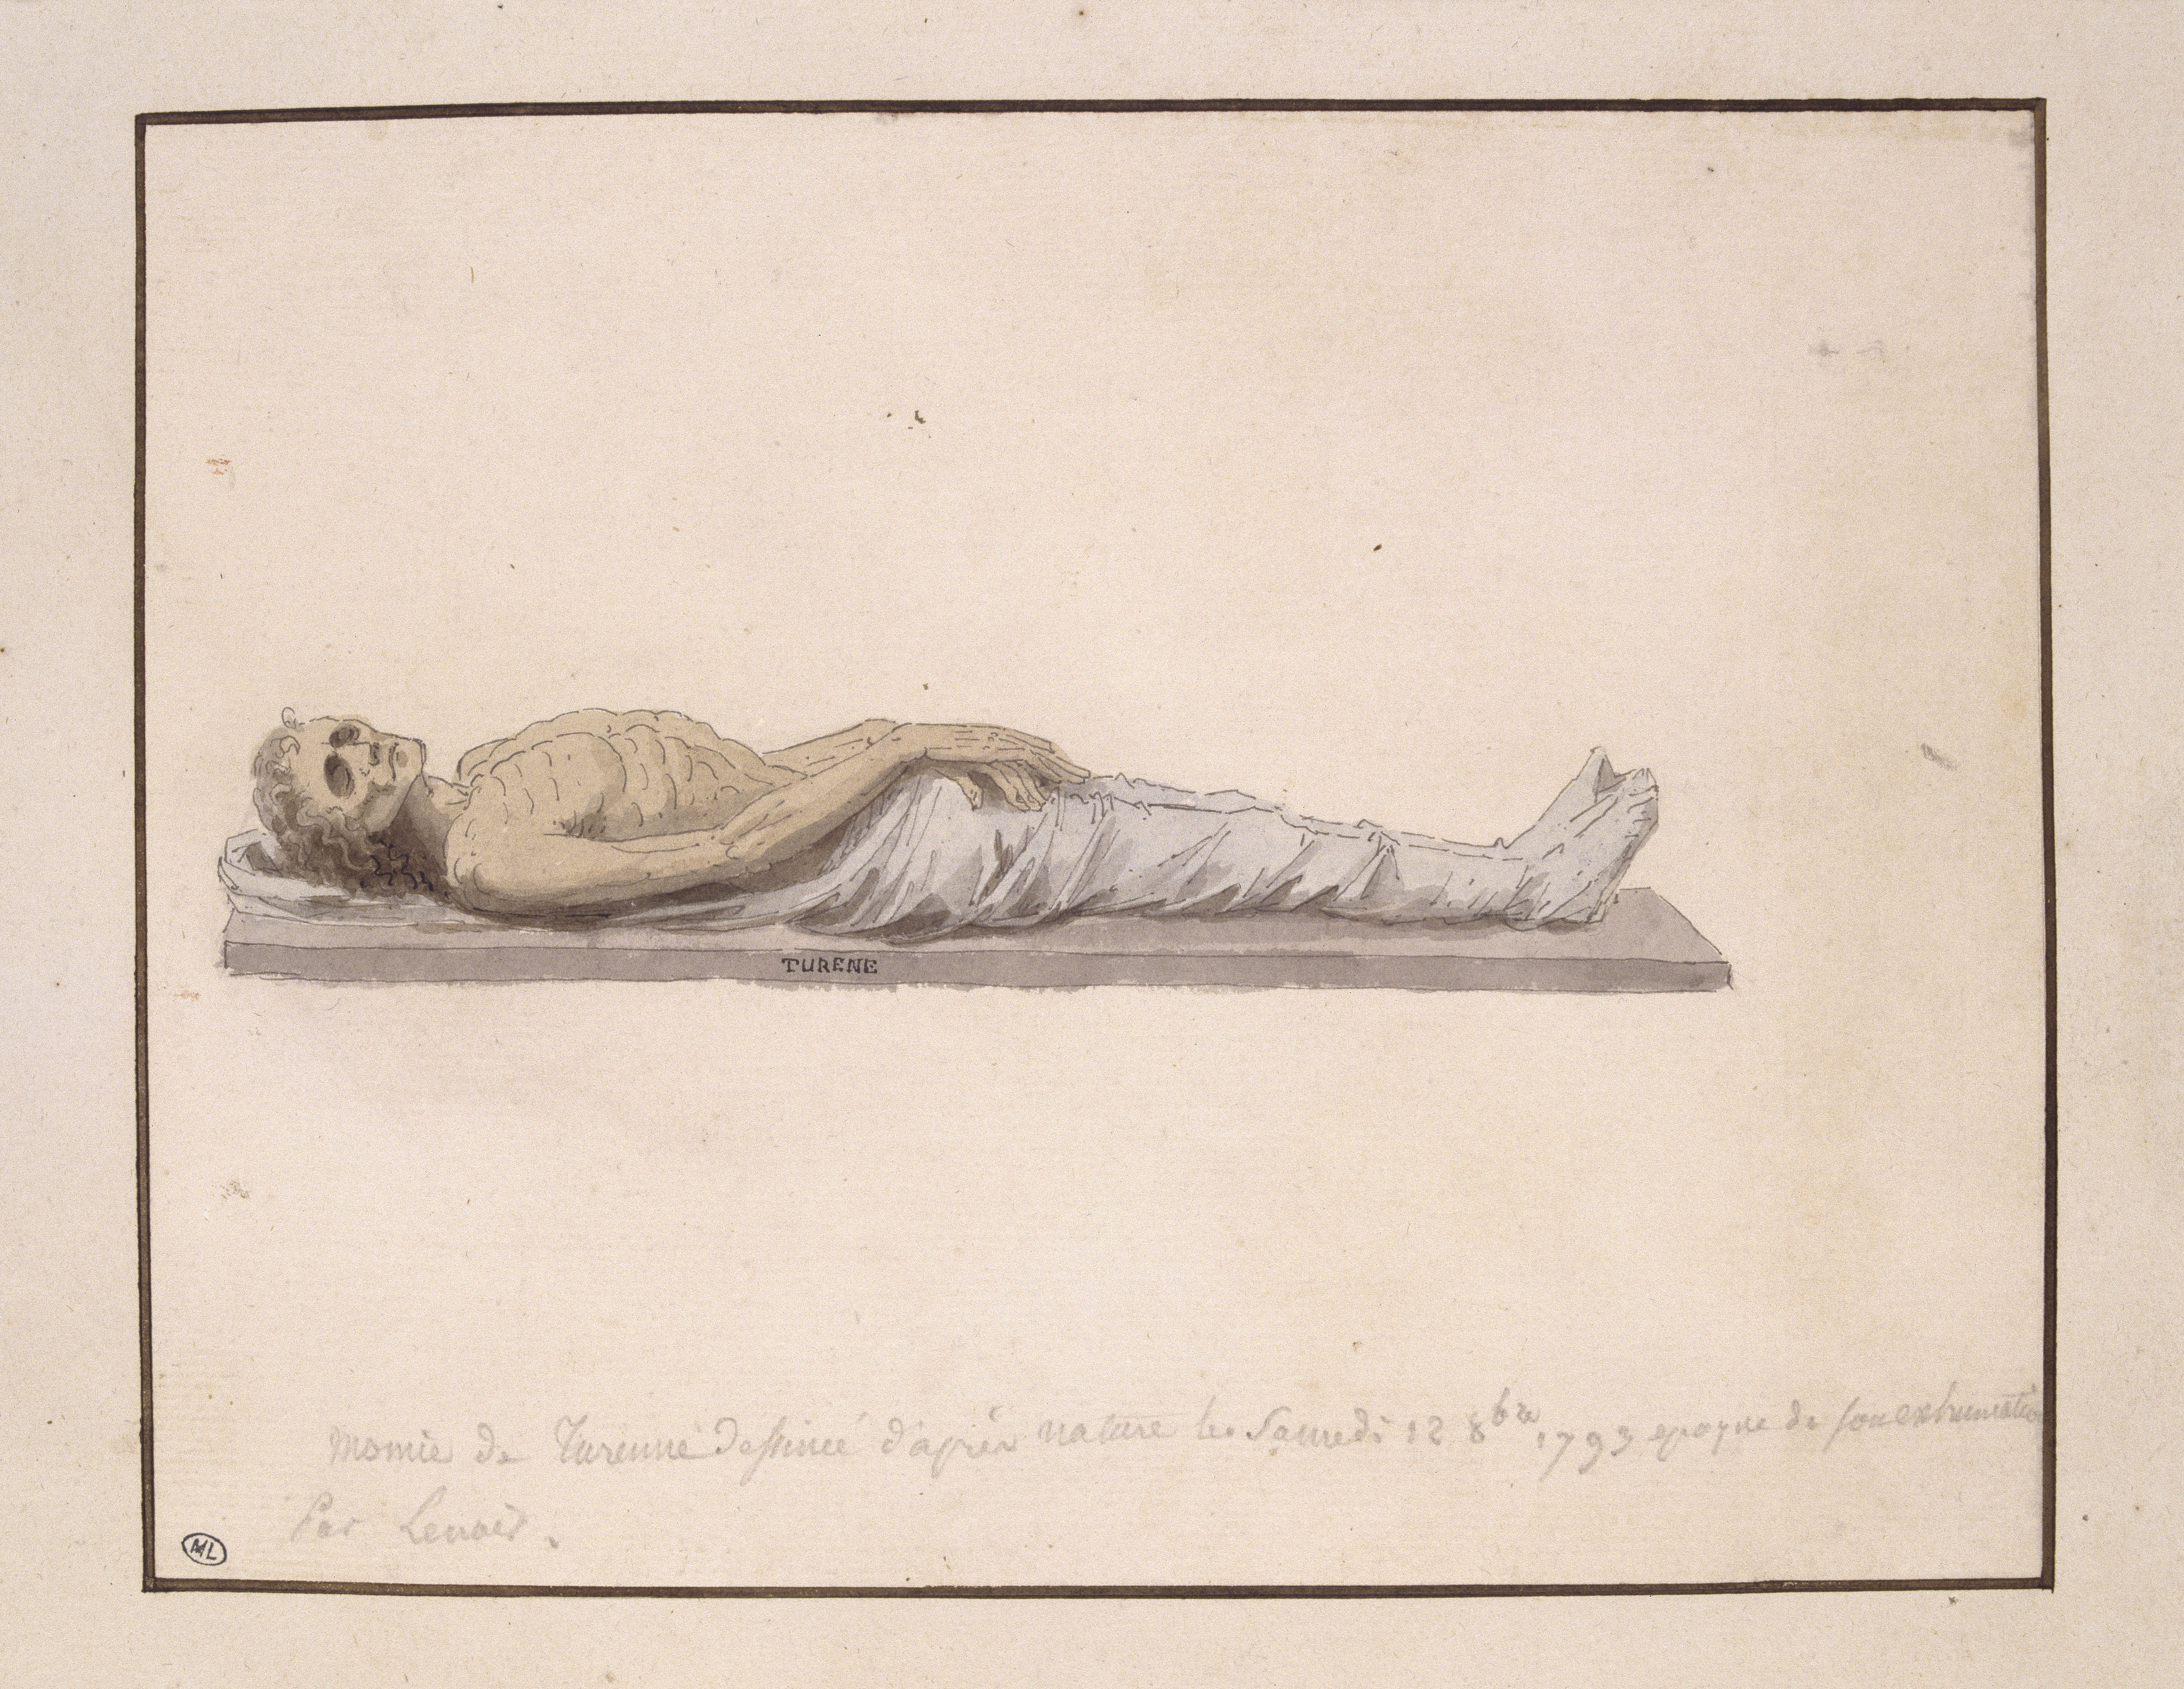 Fig. 2 Alexandre Lenoir, The Remains of Turenne Exhumed from his Tomb in 1793